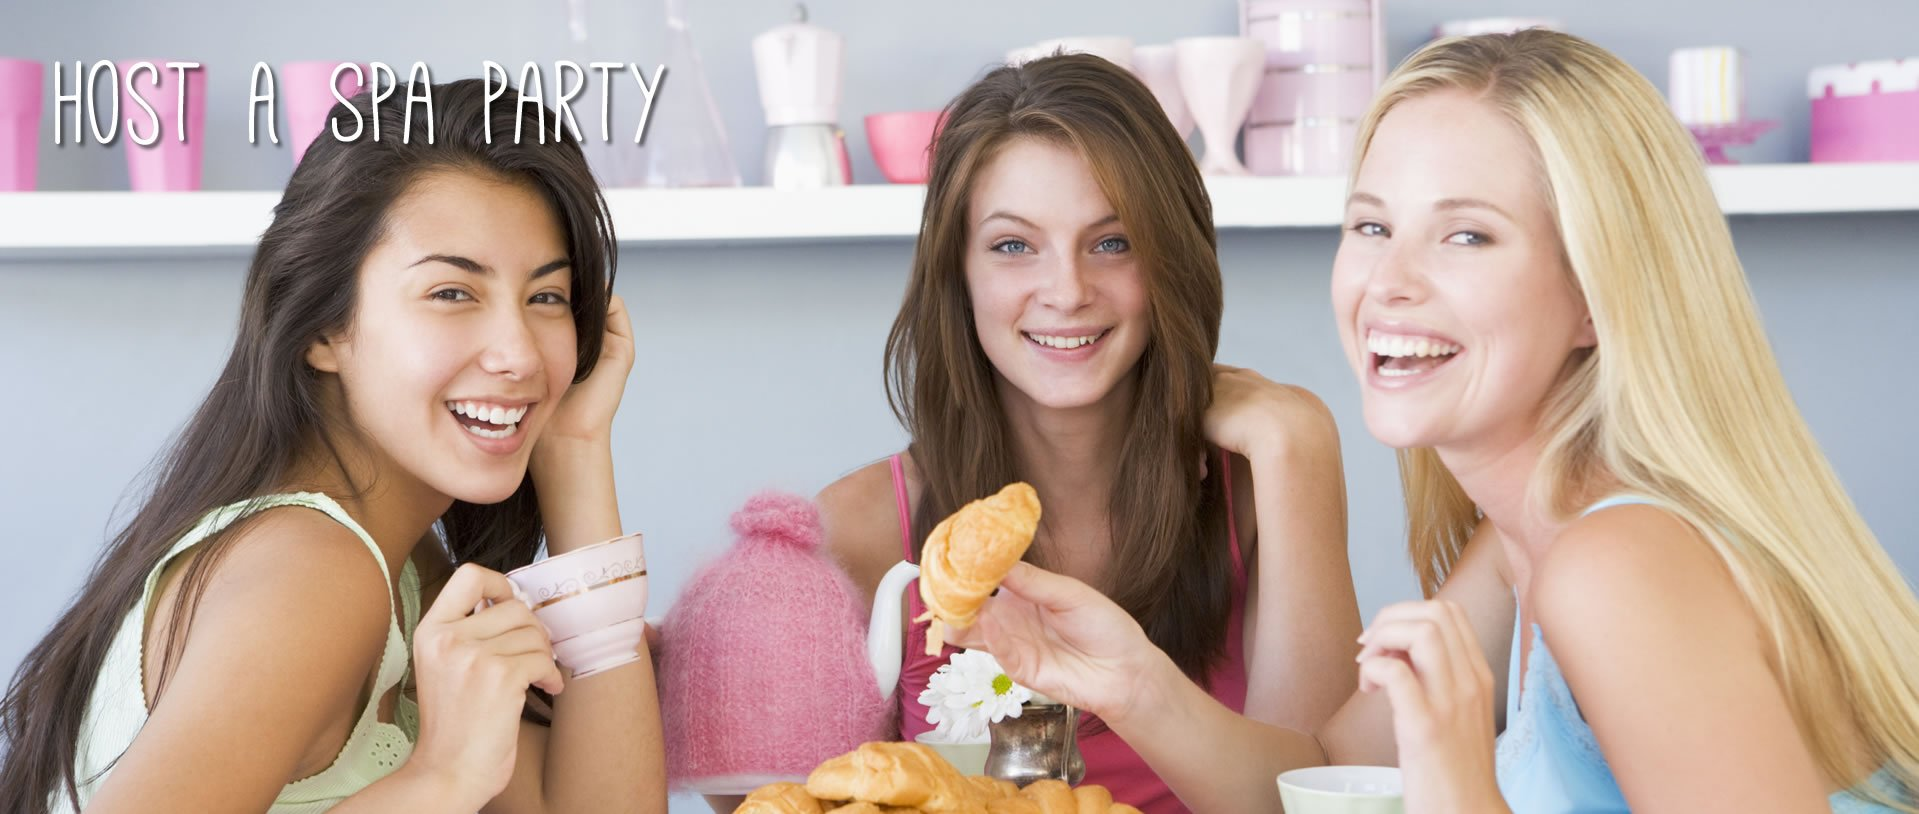 Host A Spa Party